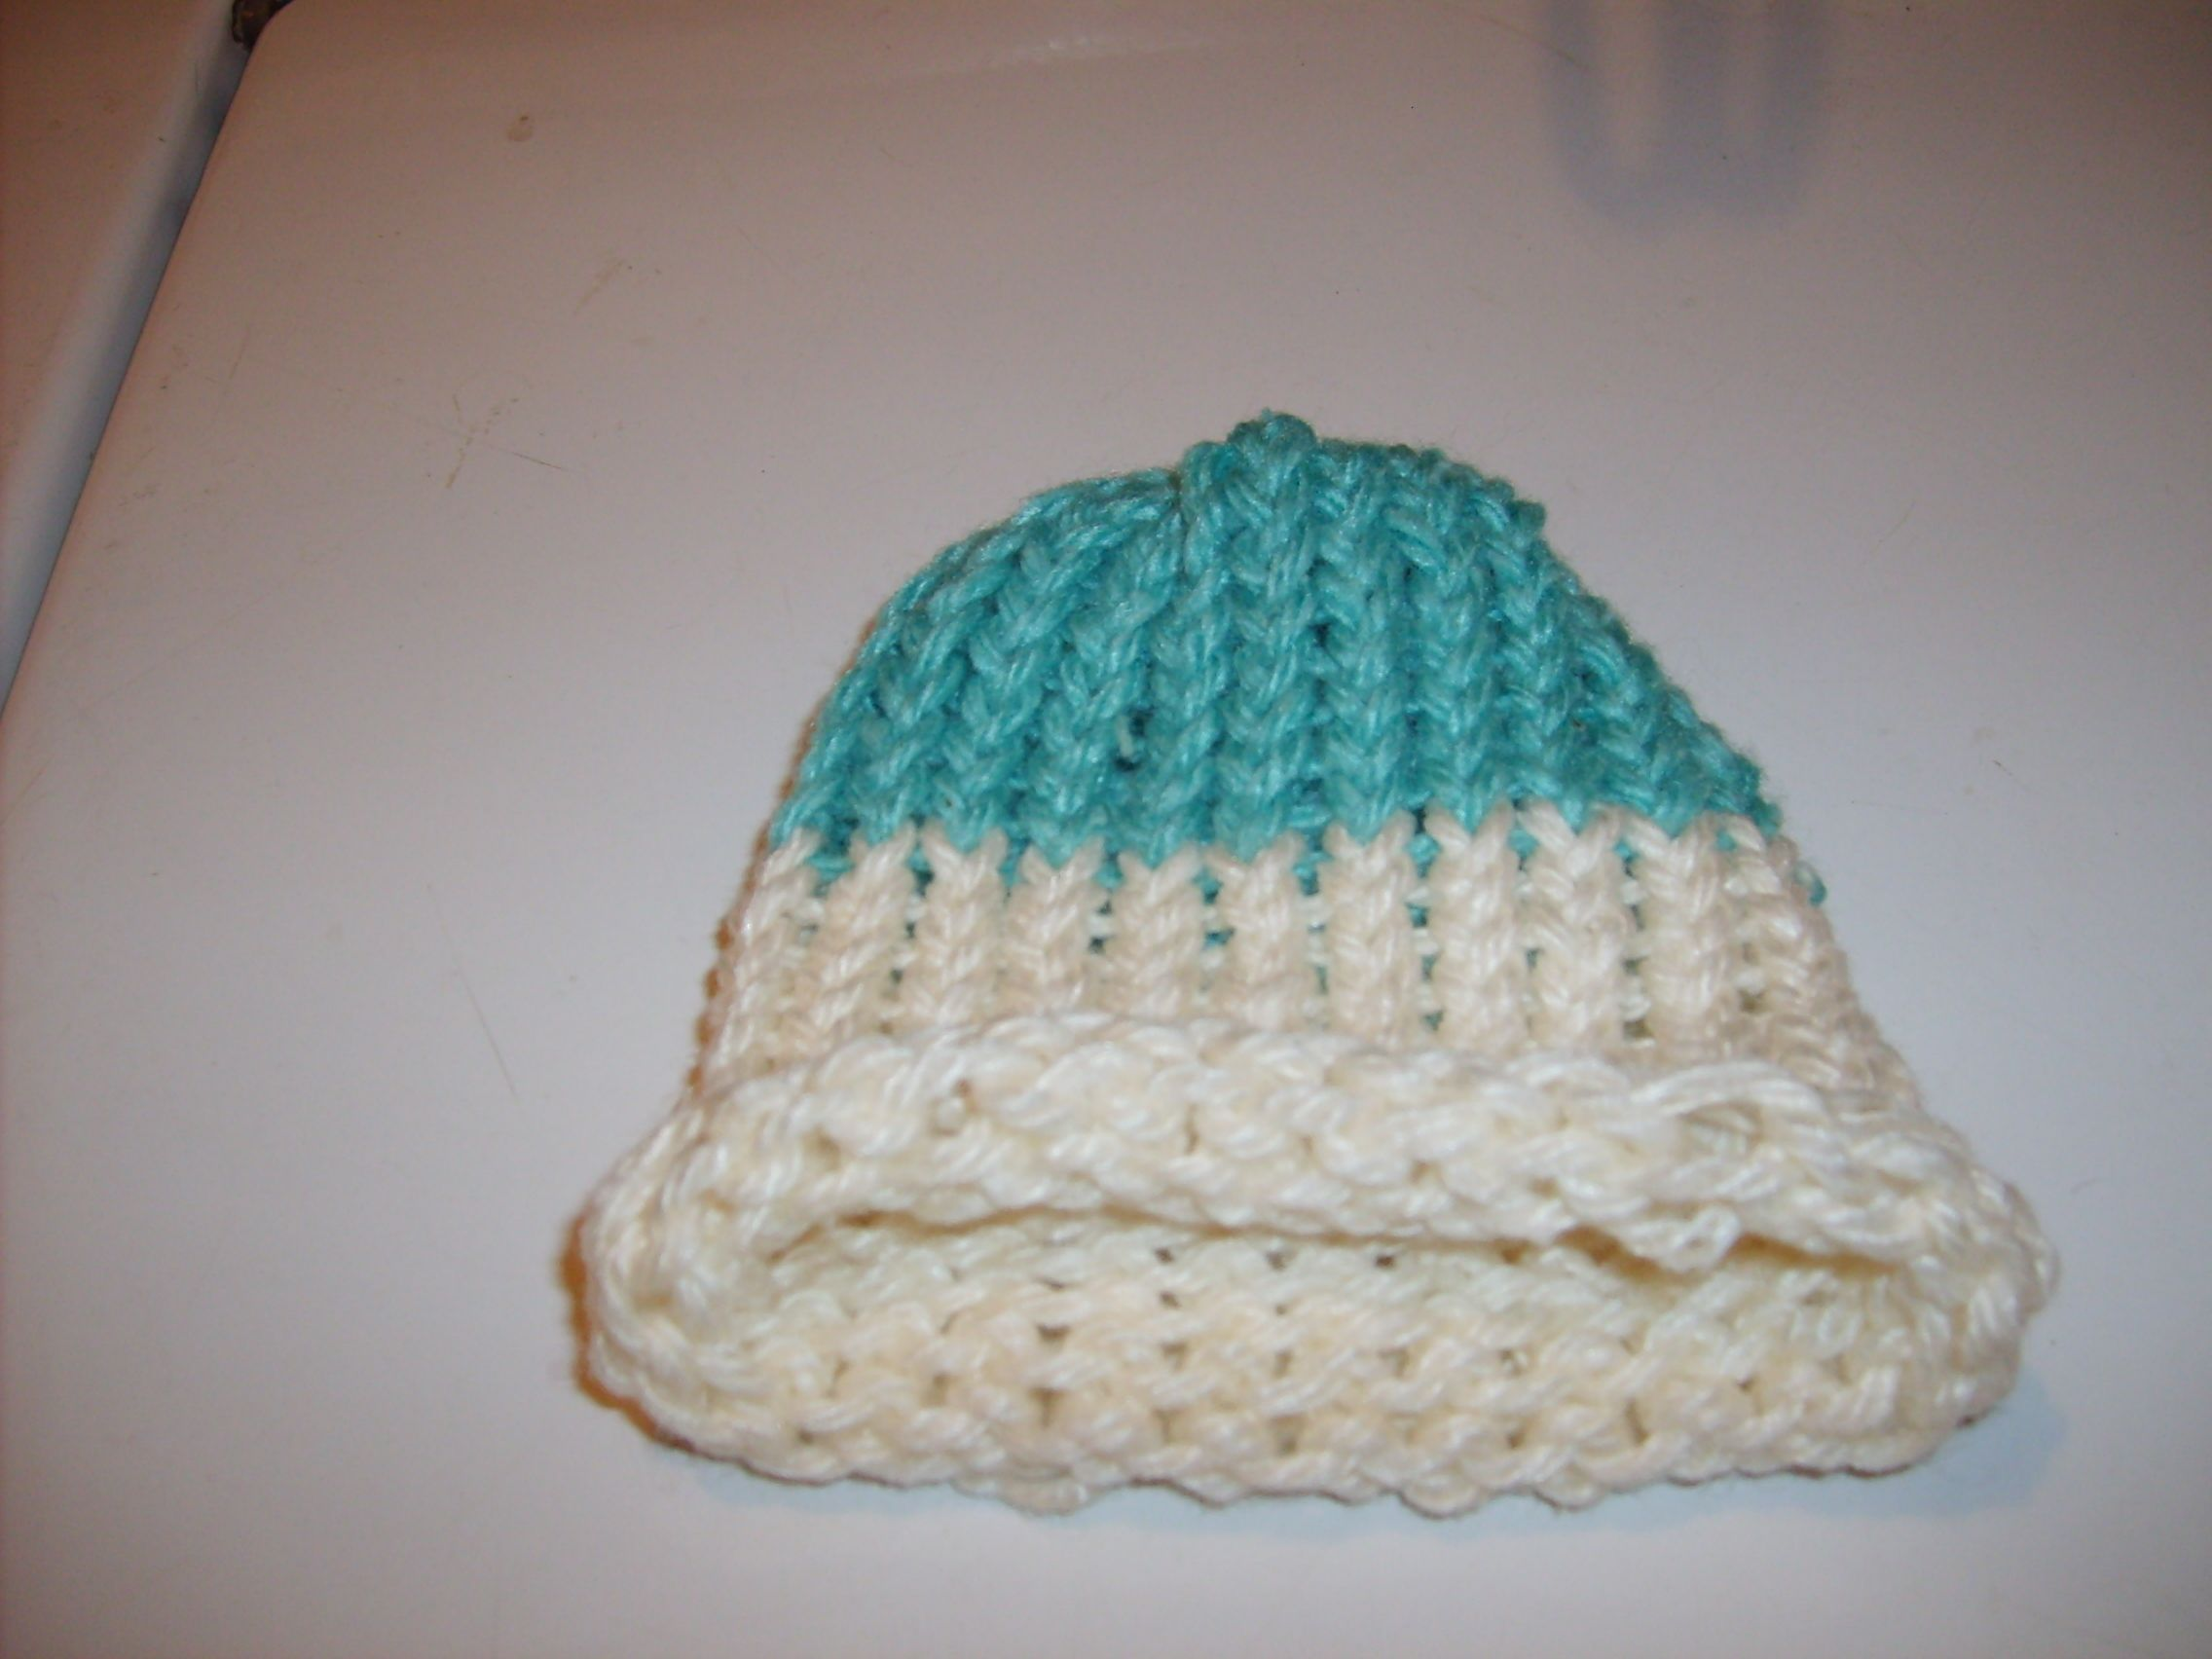 Knitting Loom Patterns Baby Hats : Baby loom knitted hat. Loom Knitting Fun Pinterest